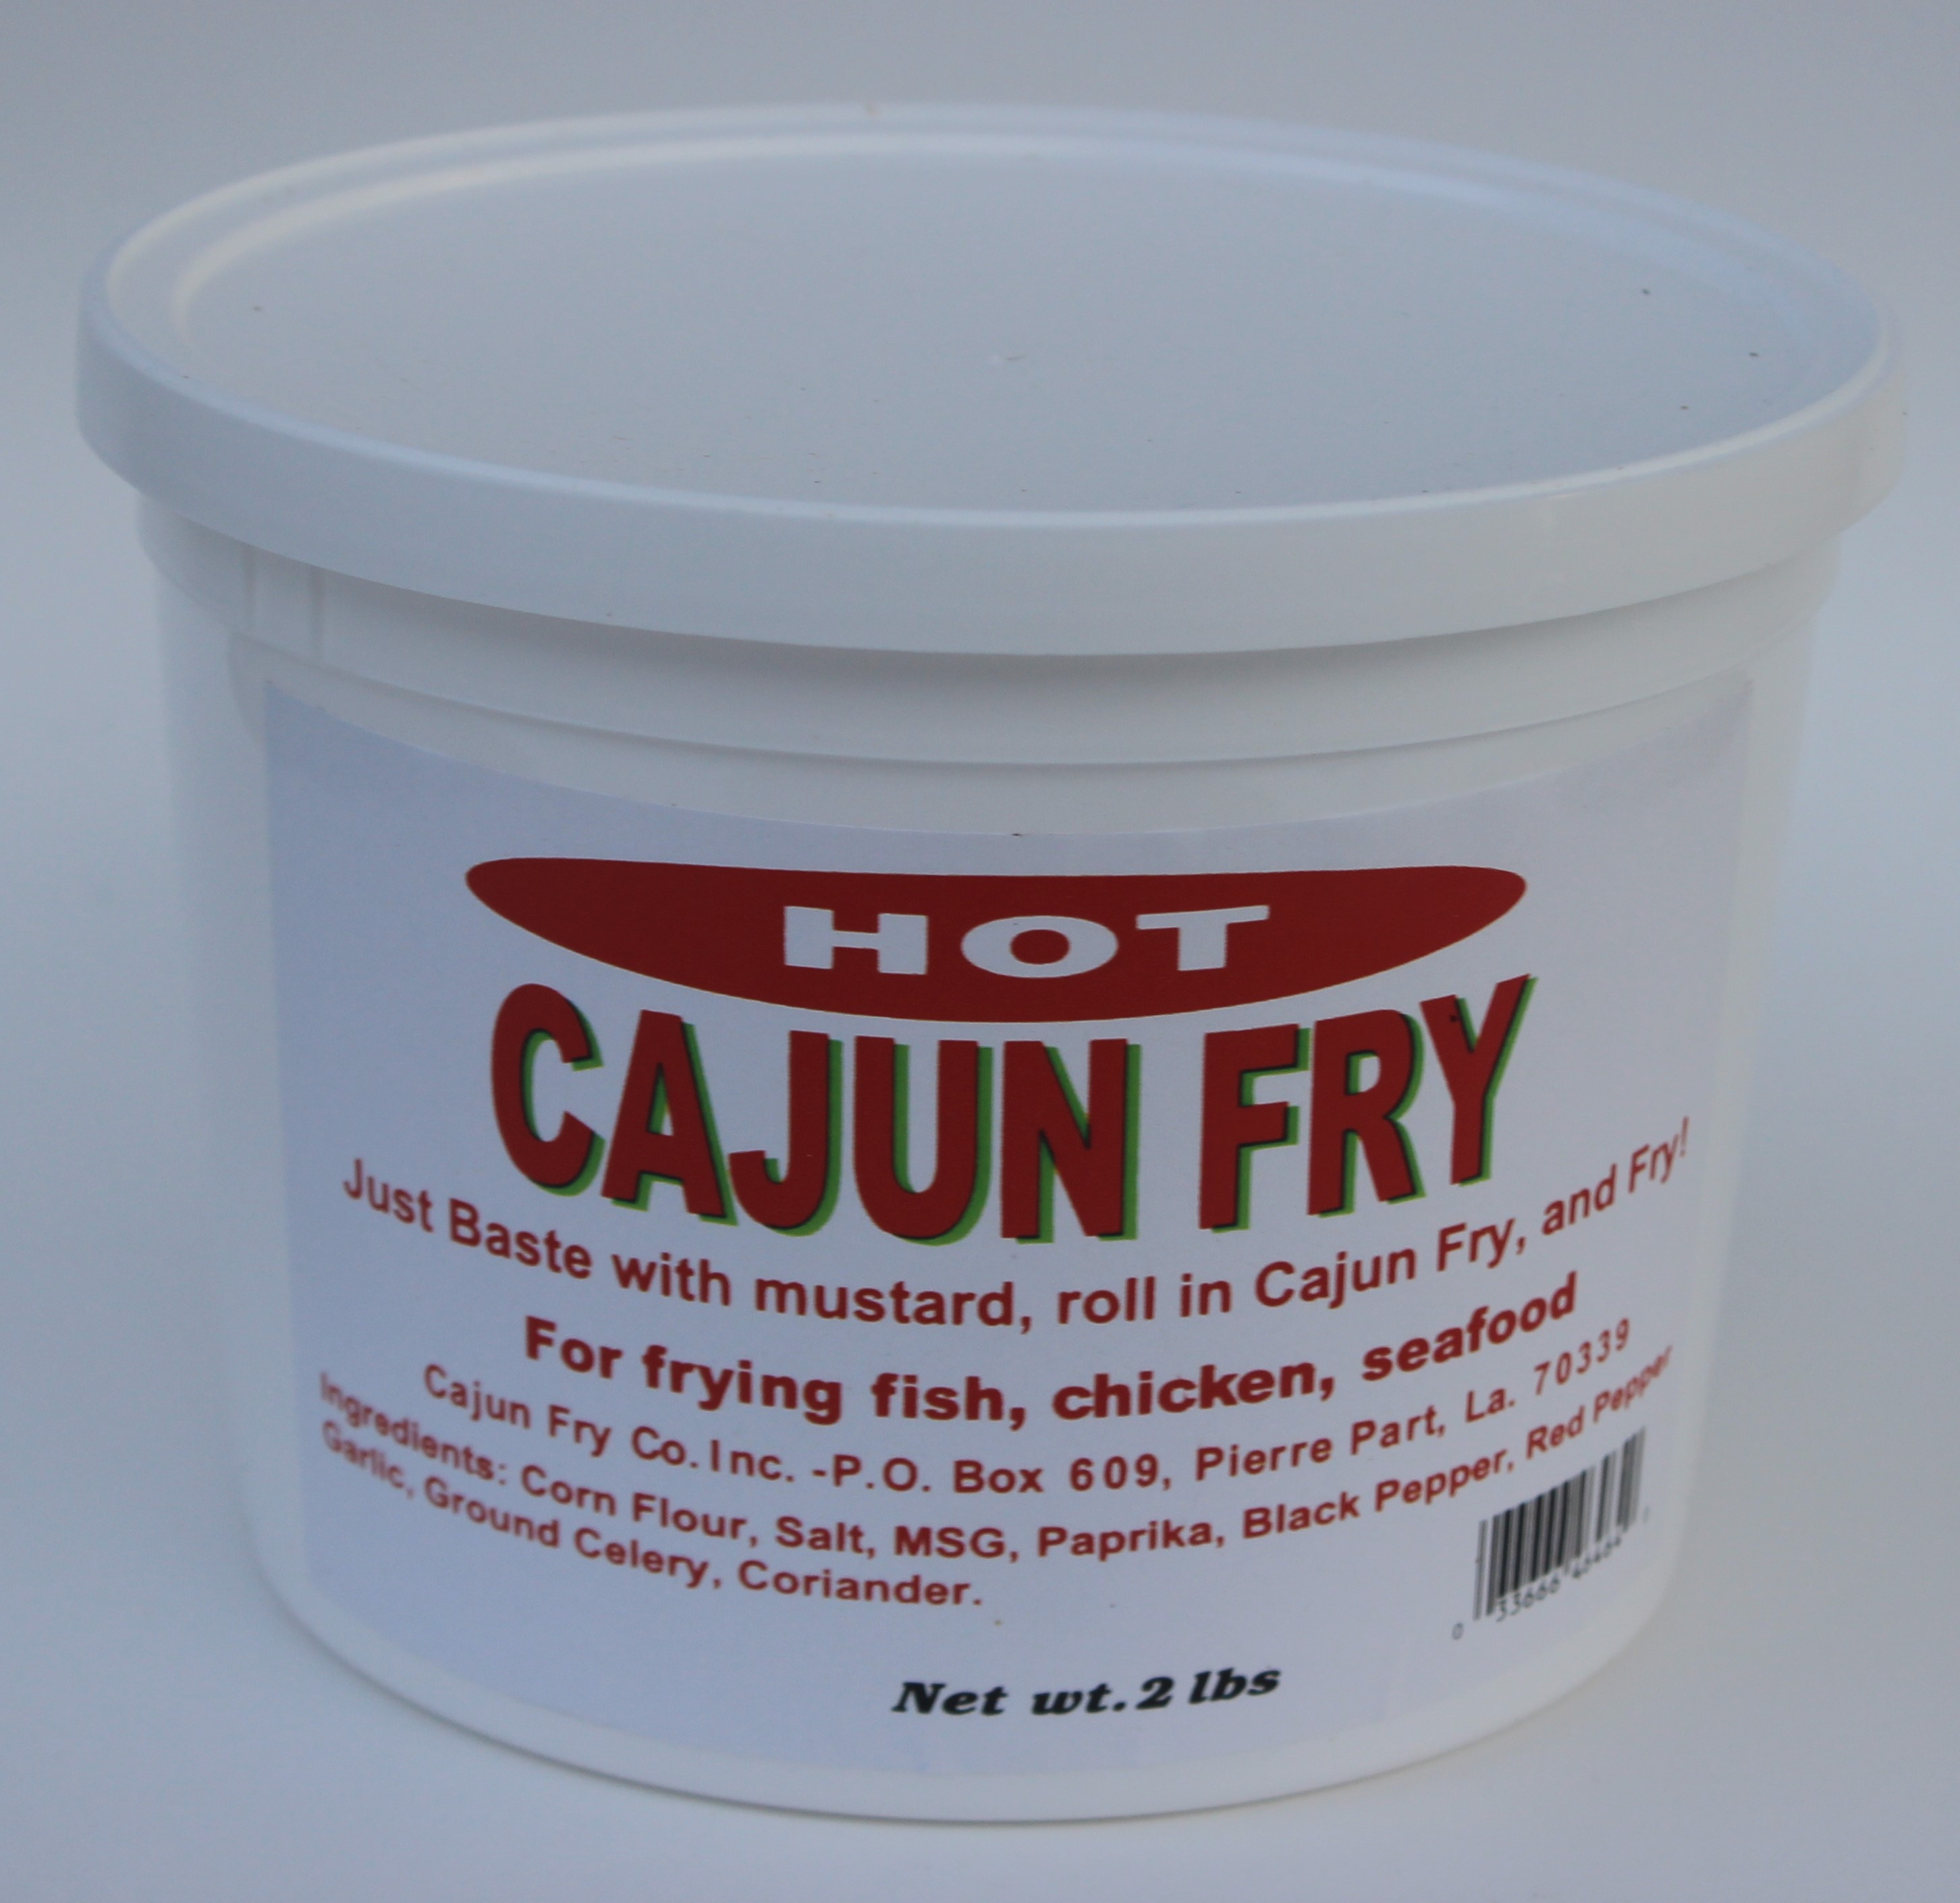 Cajun Fry Products LLC